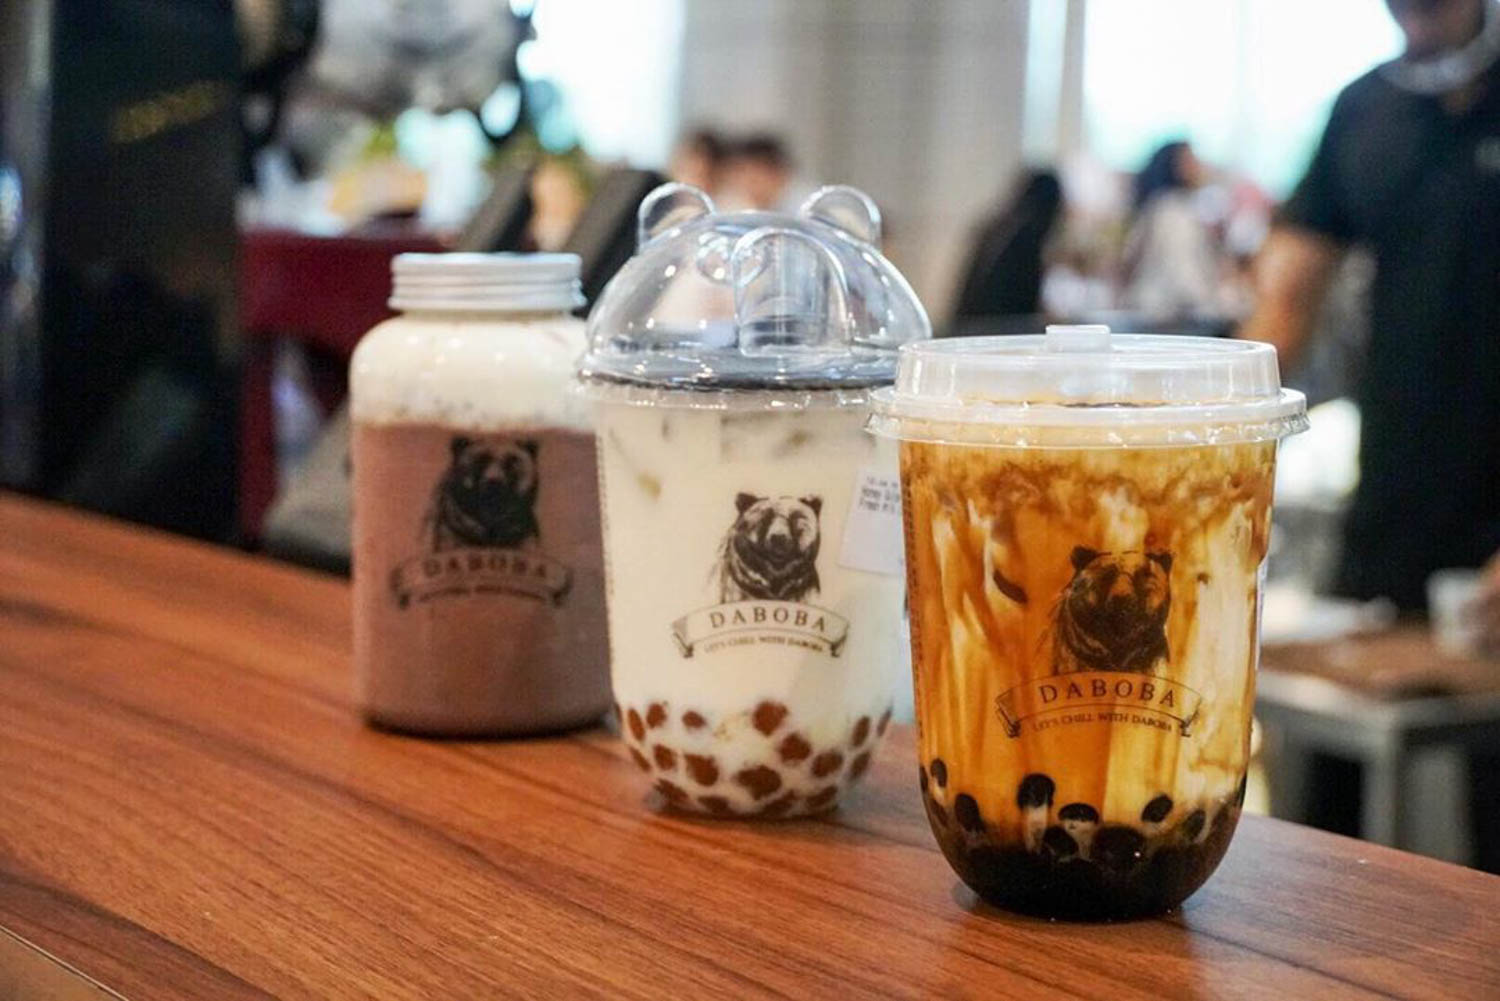 Bubble Tea Shops - Daboba